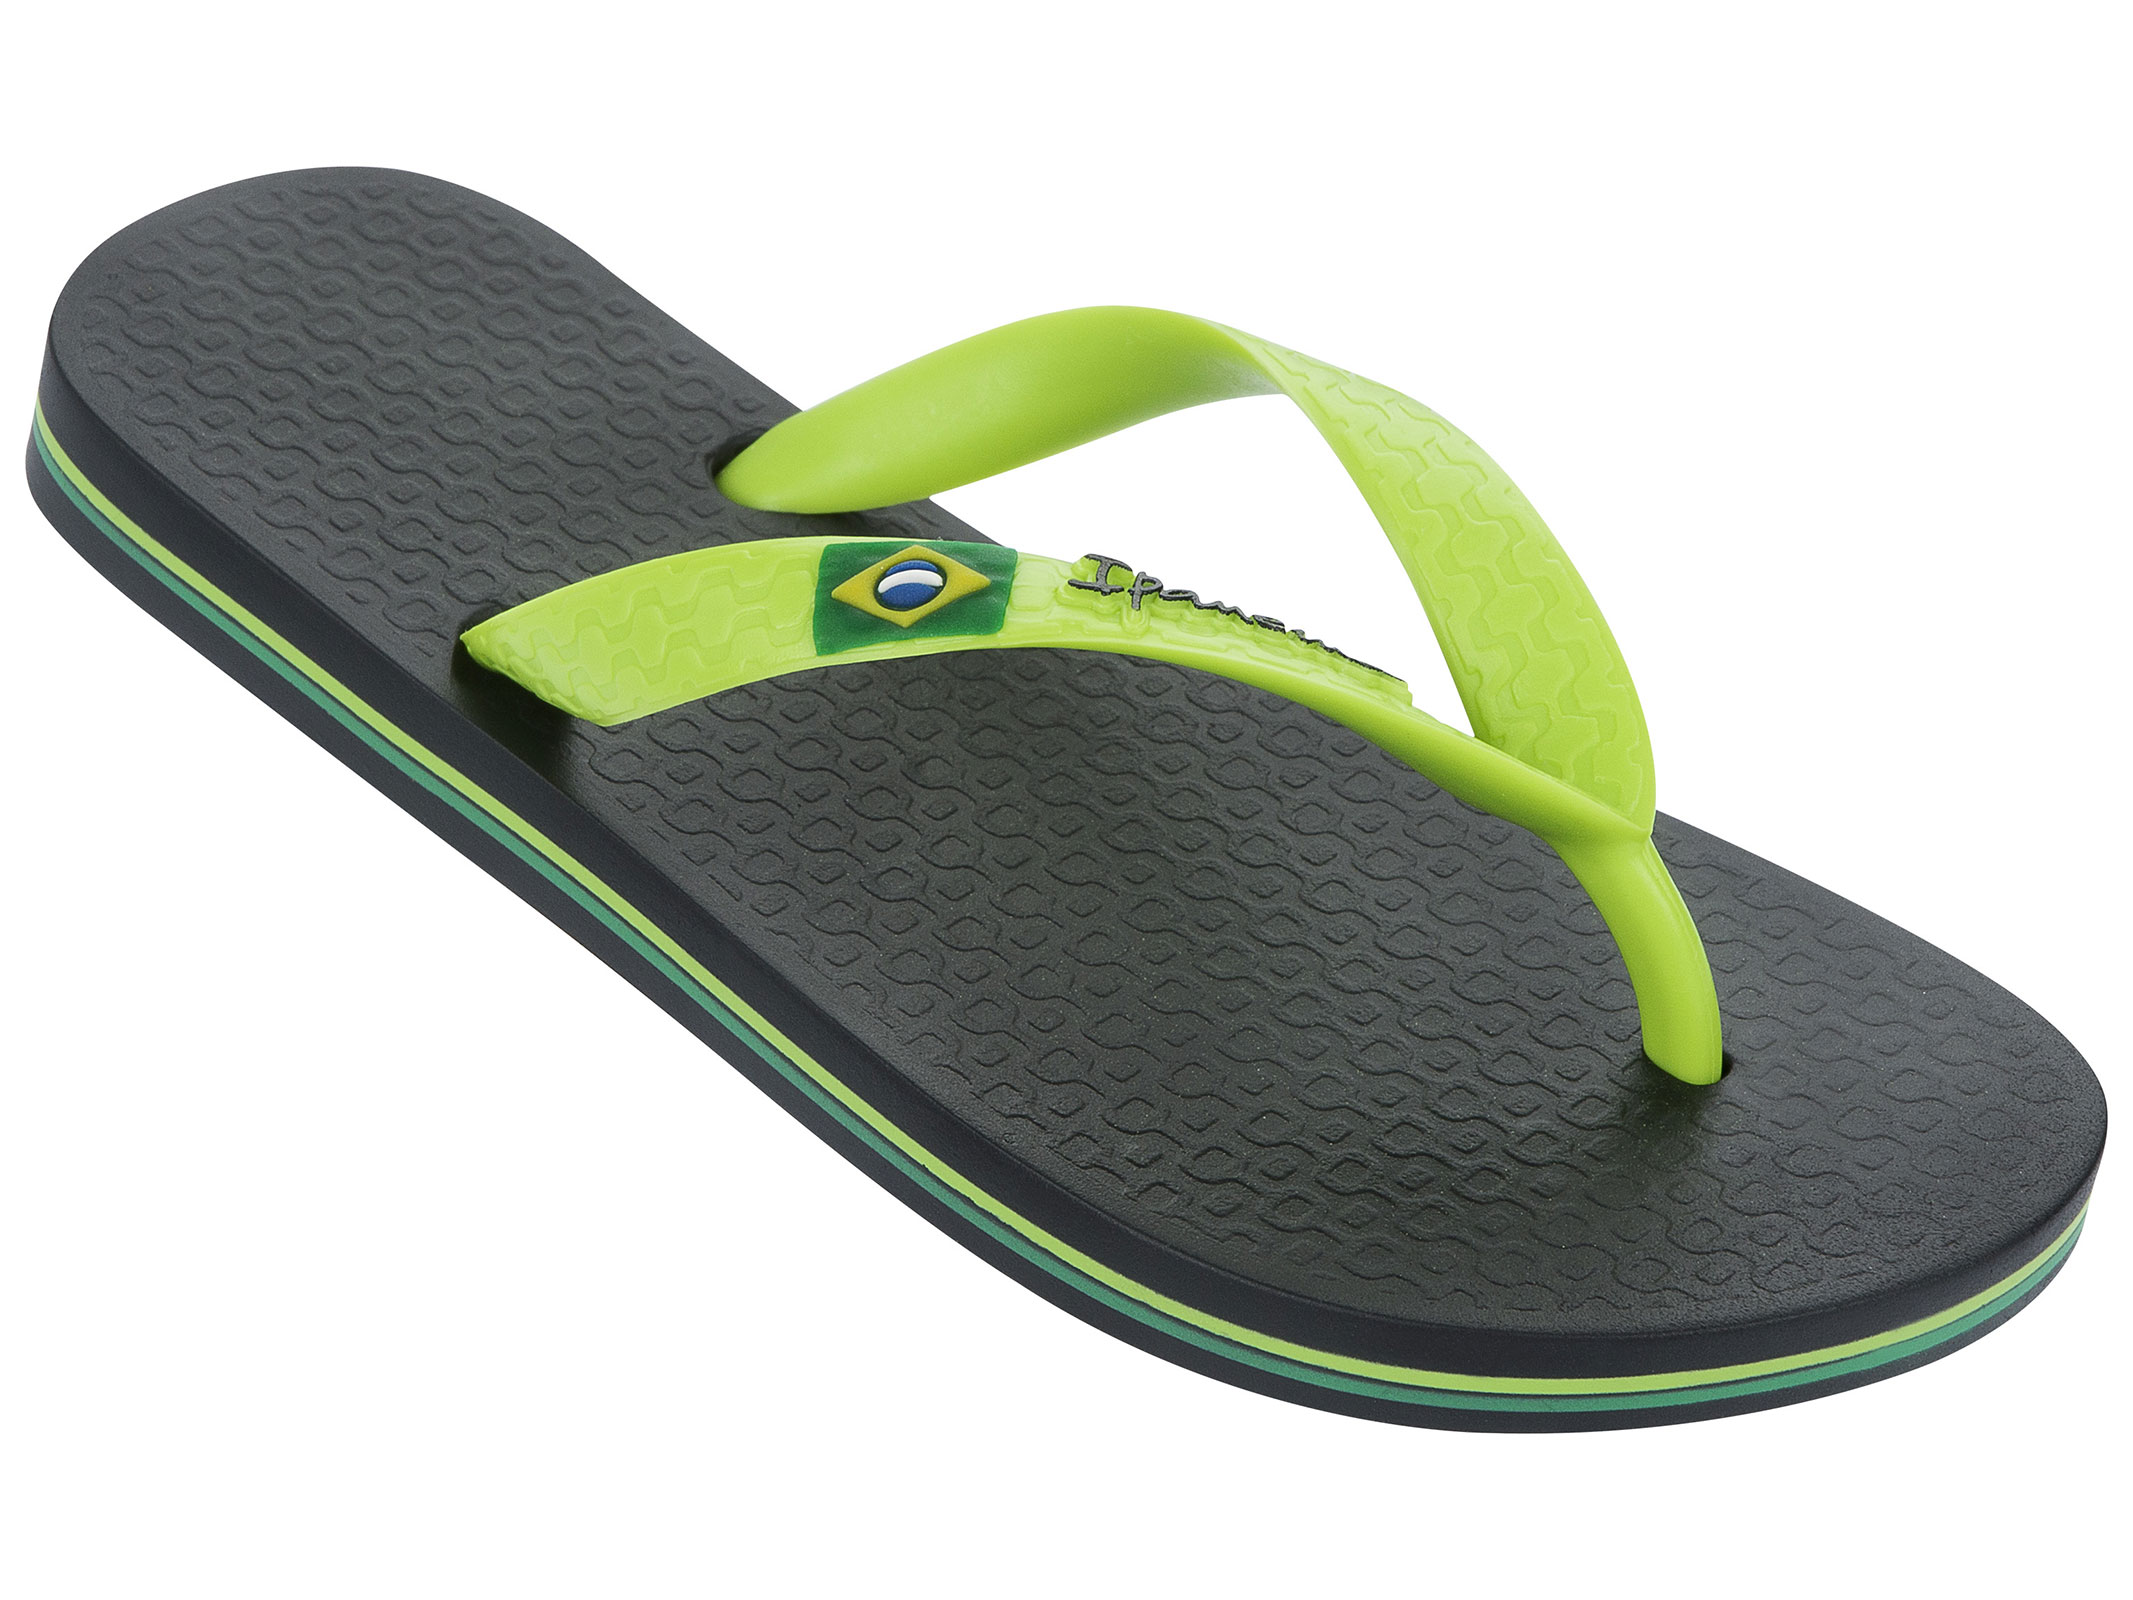 classica men 39 s flip flops in black and shades of green from the ipanema brand made in brazil. Black Bedroom Furniture Sets. Home Design Ideas